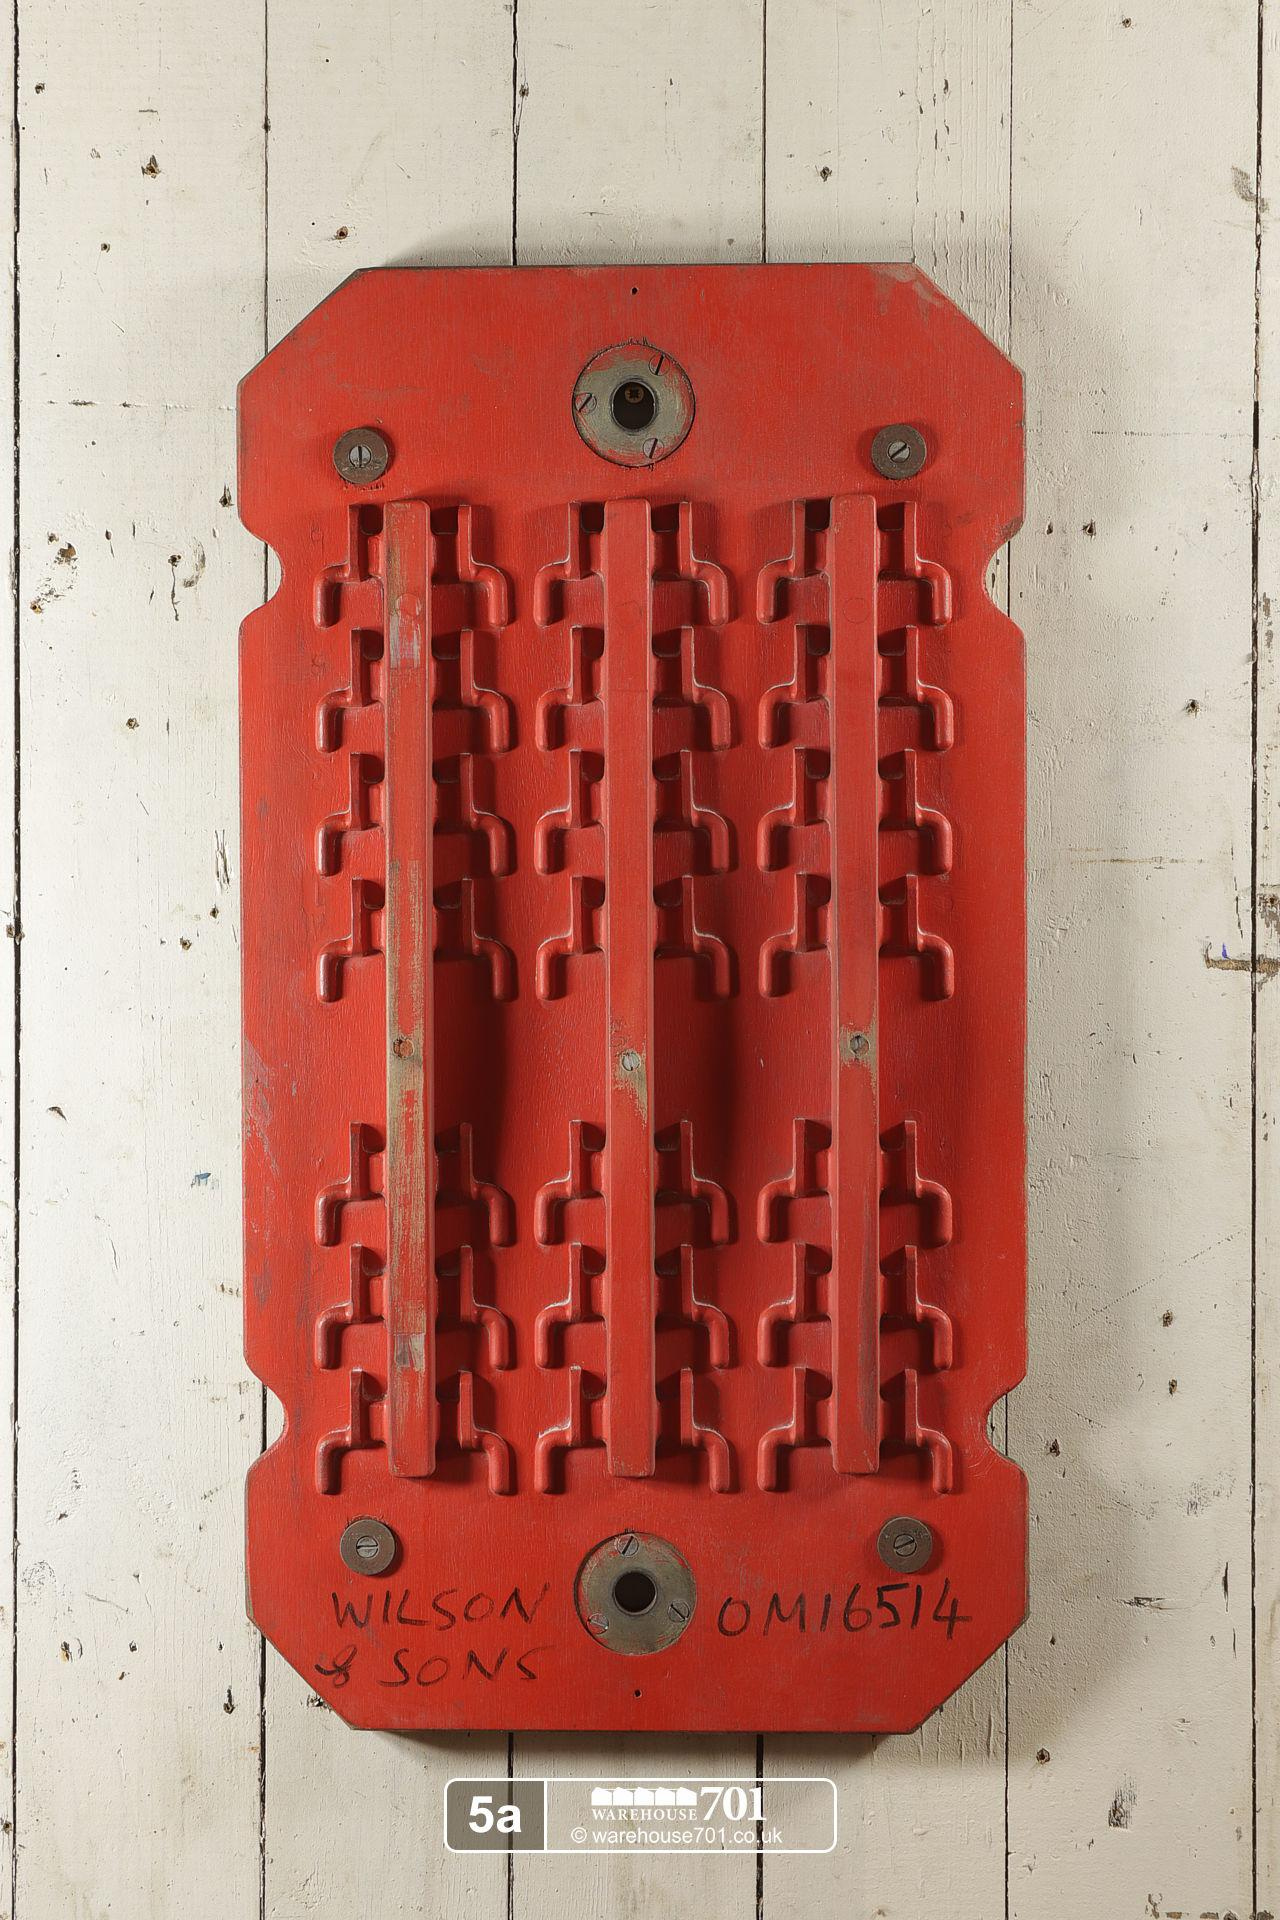 Reclaimed Foundry Patterns or Moulds (No's 4 to 6) for Shop, Retail and Home Display #5